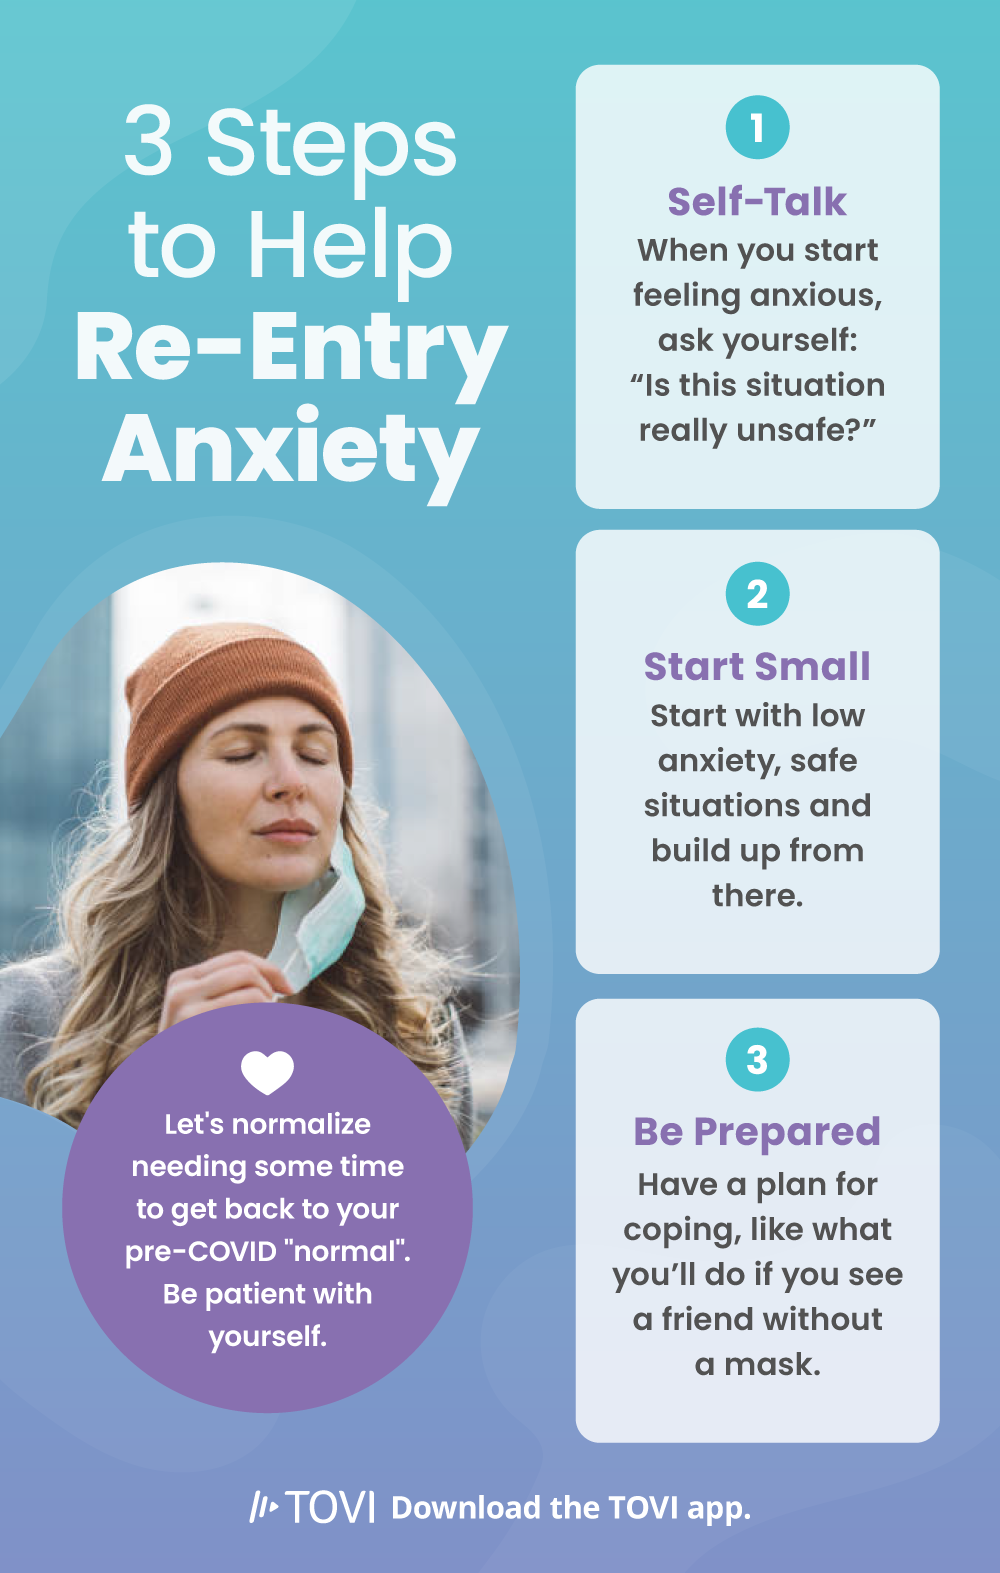 Infographic explaining 3 steps to help with re-entry anxiety